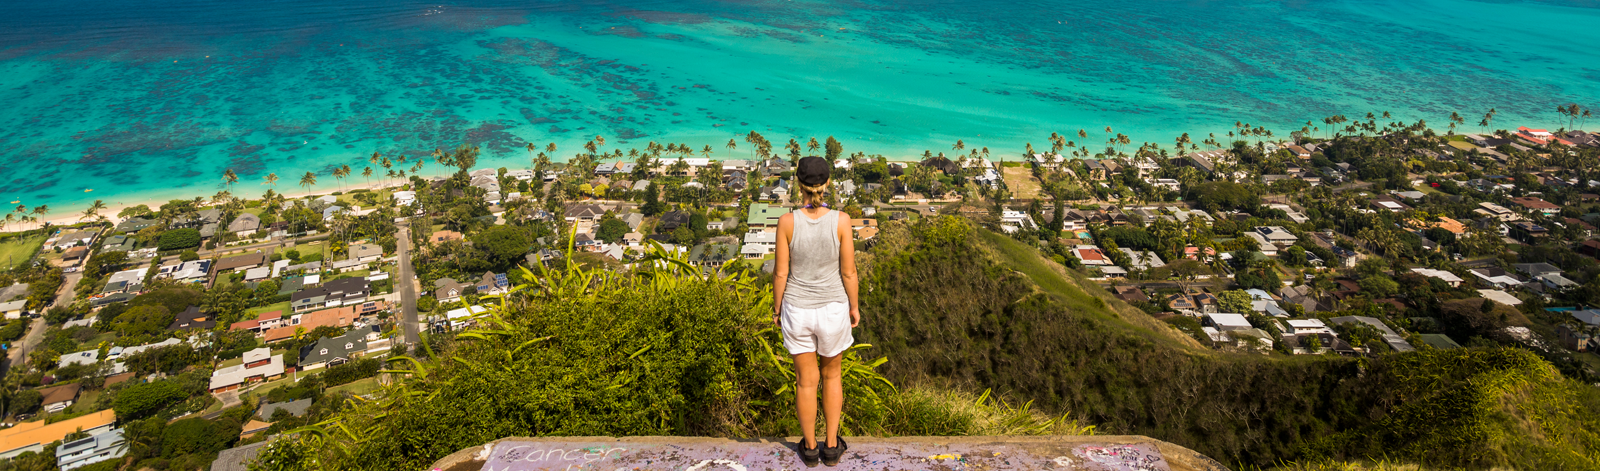 9 Top Beach Towns in the U.S. - Kailua Oahu